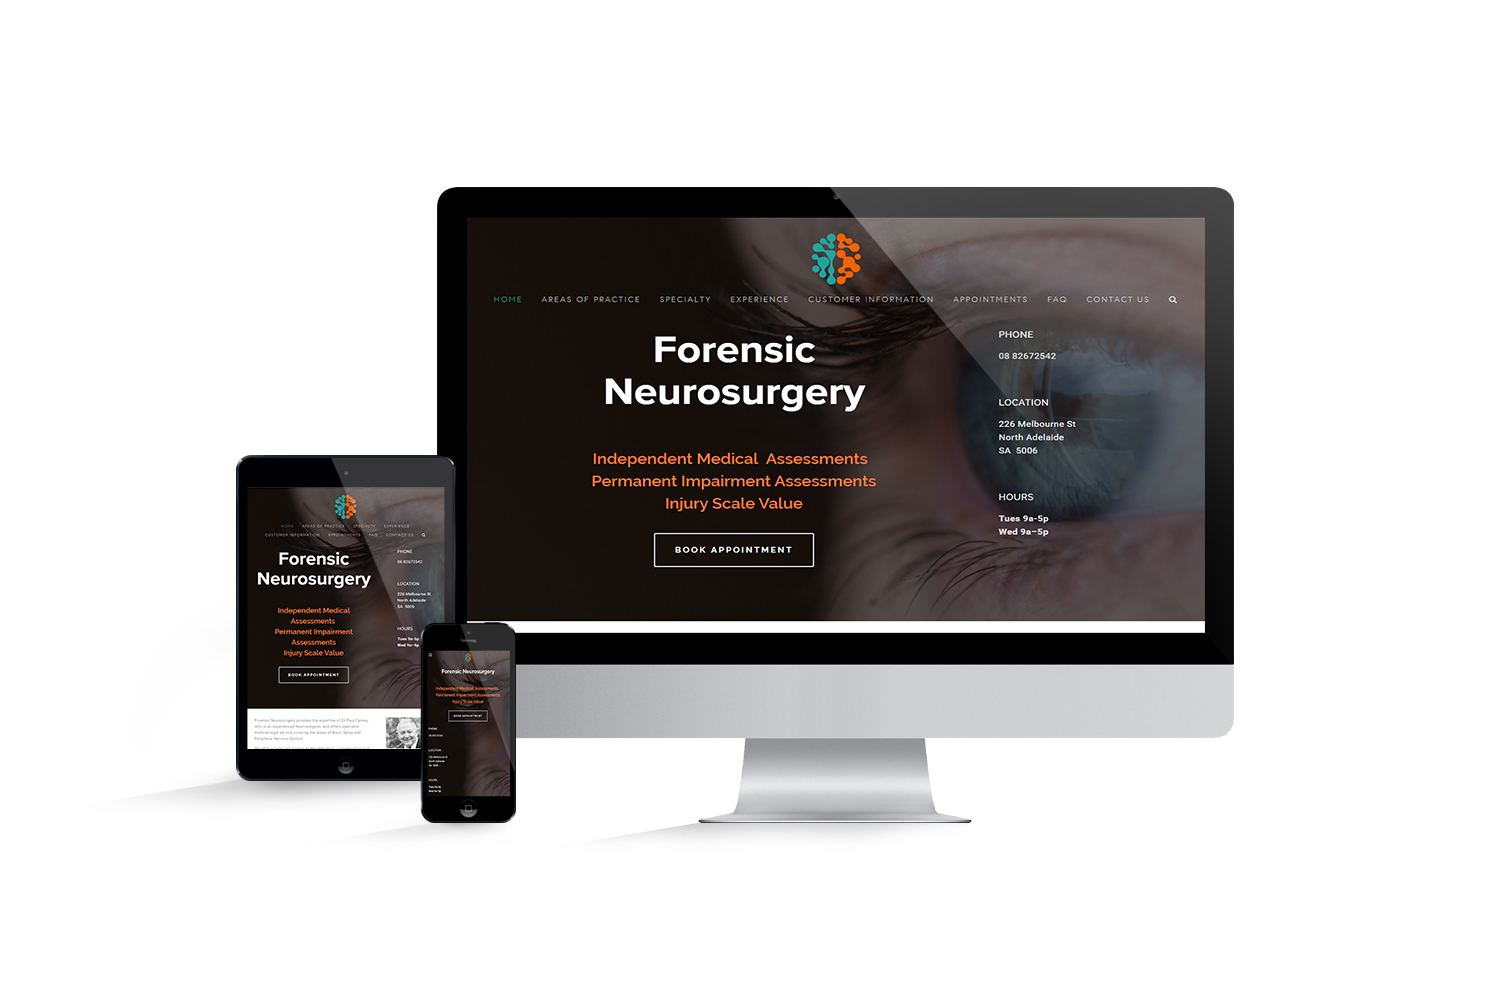 Forensic Neurosurgery